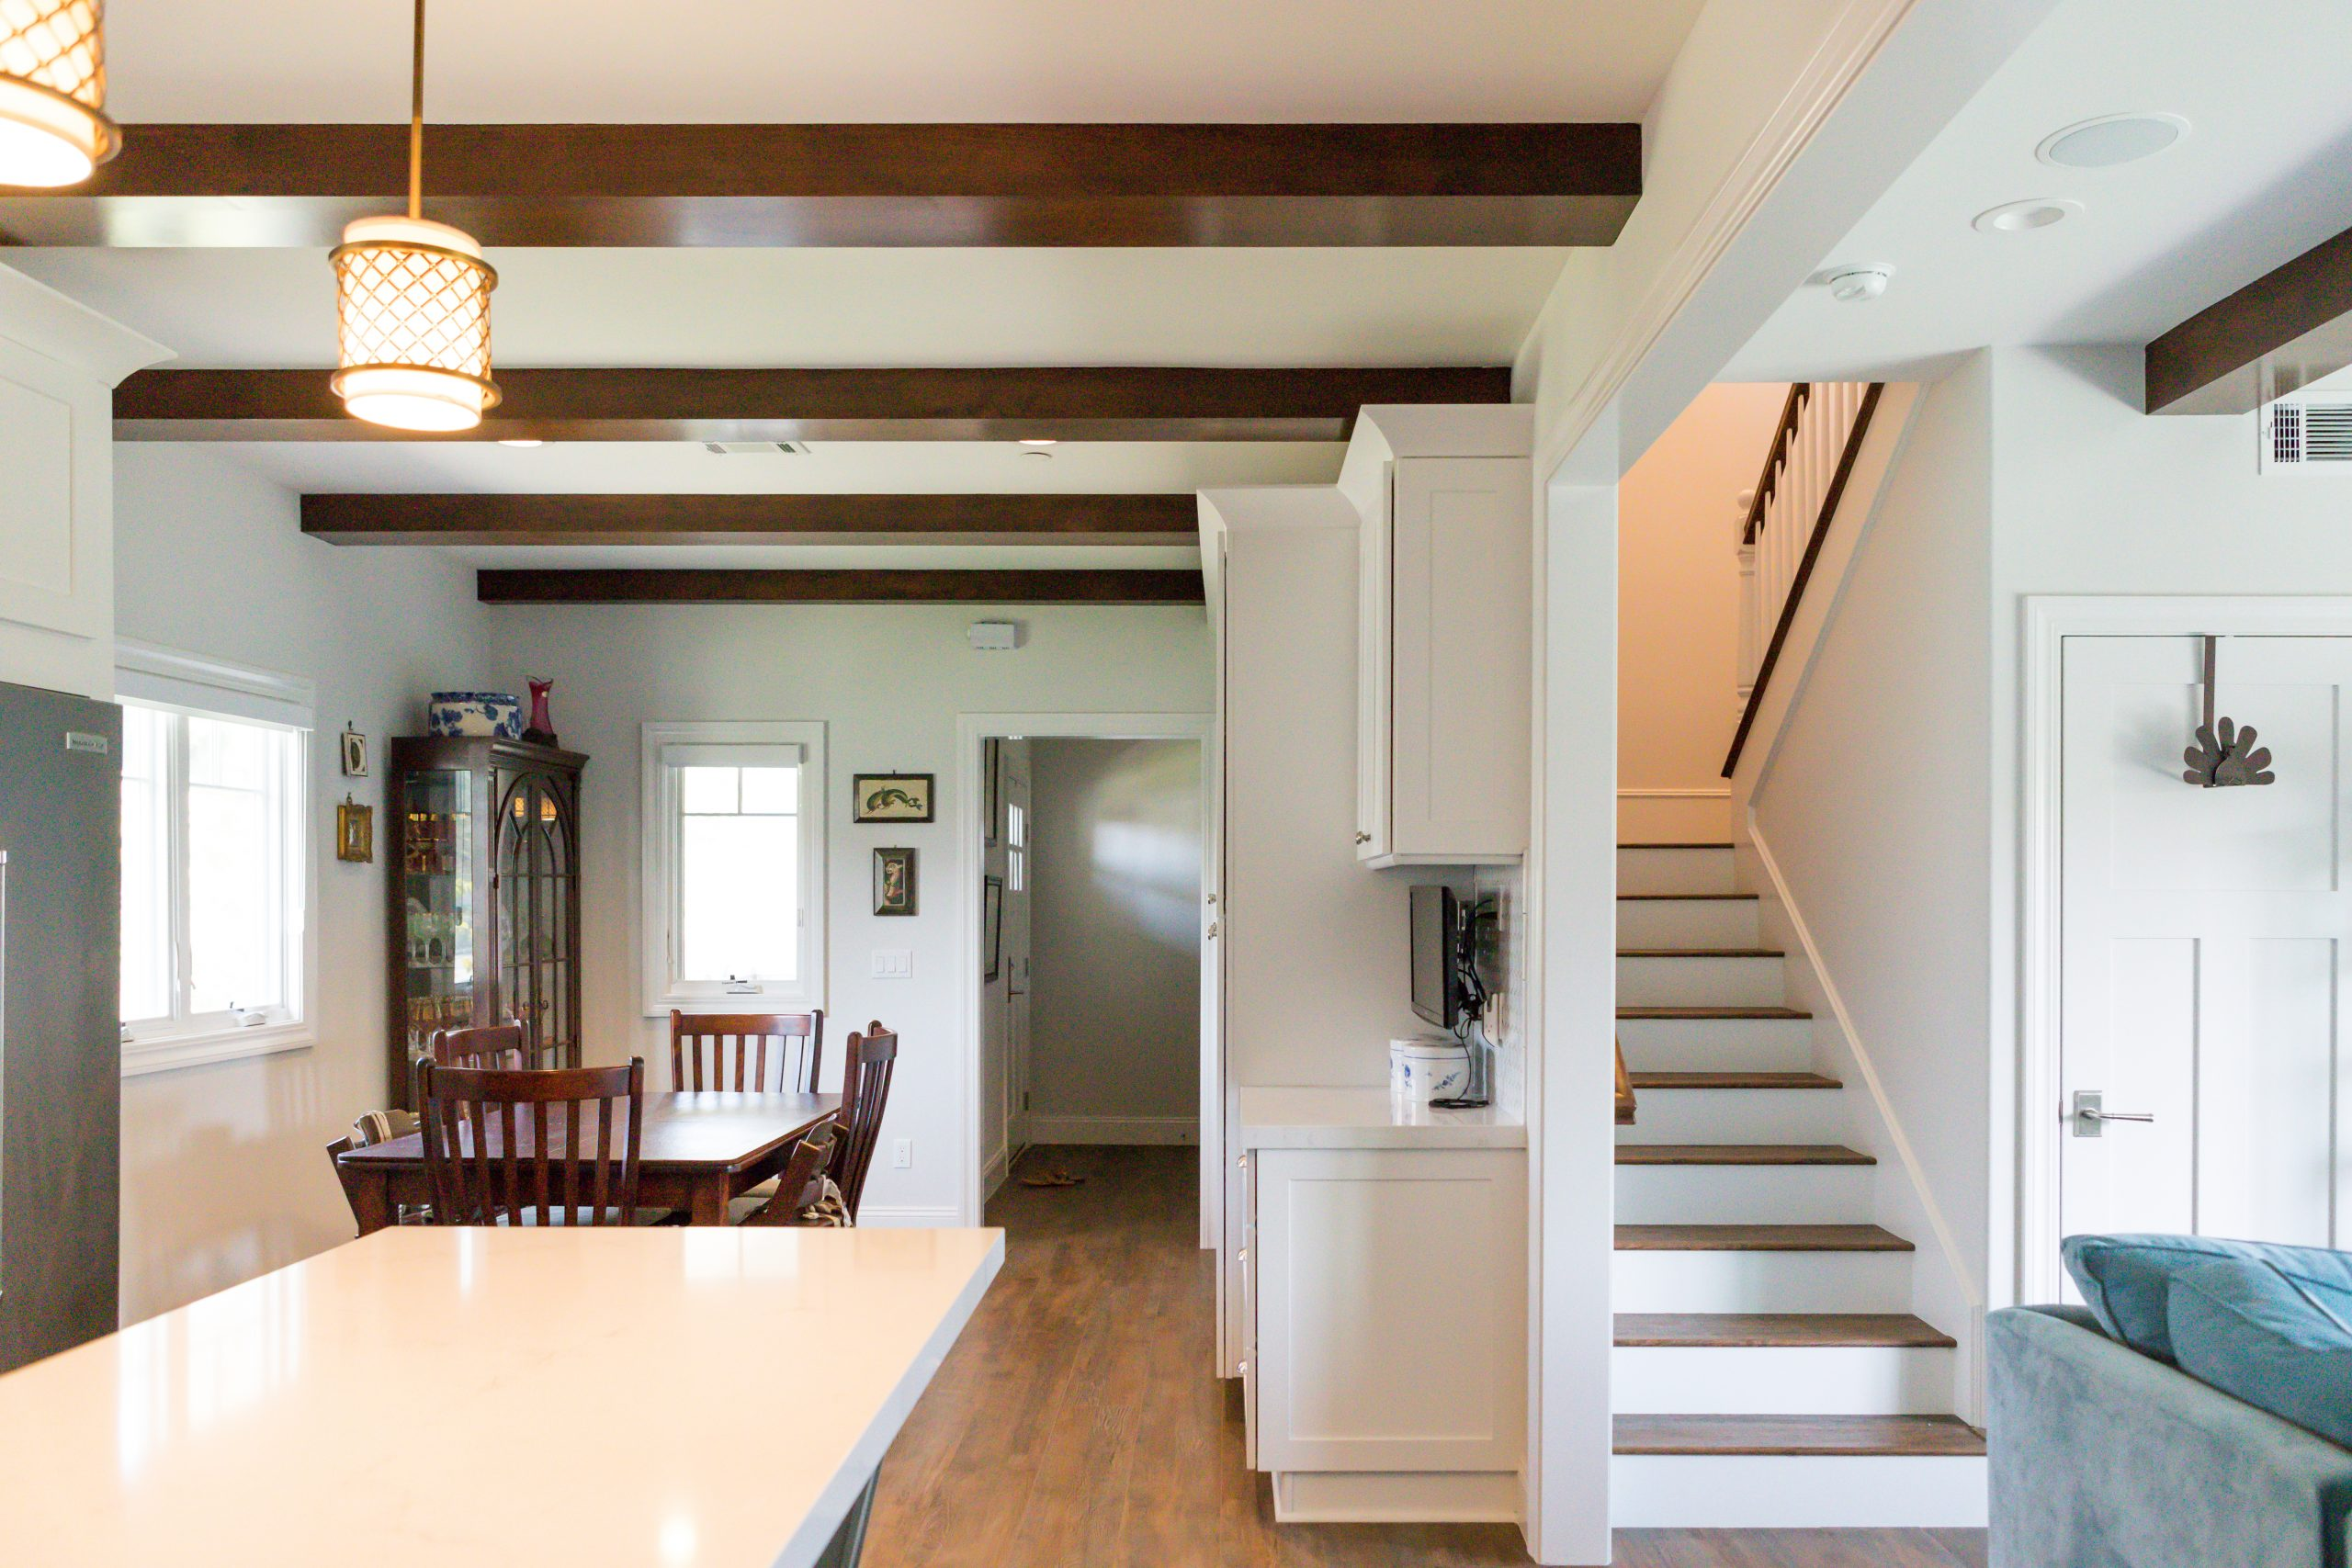 renovated room with original wood beam ceiling